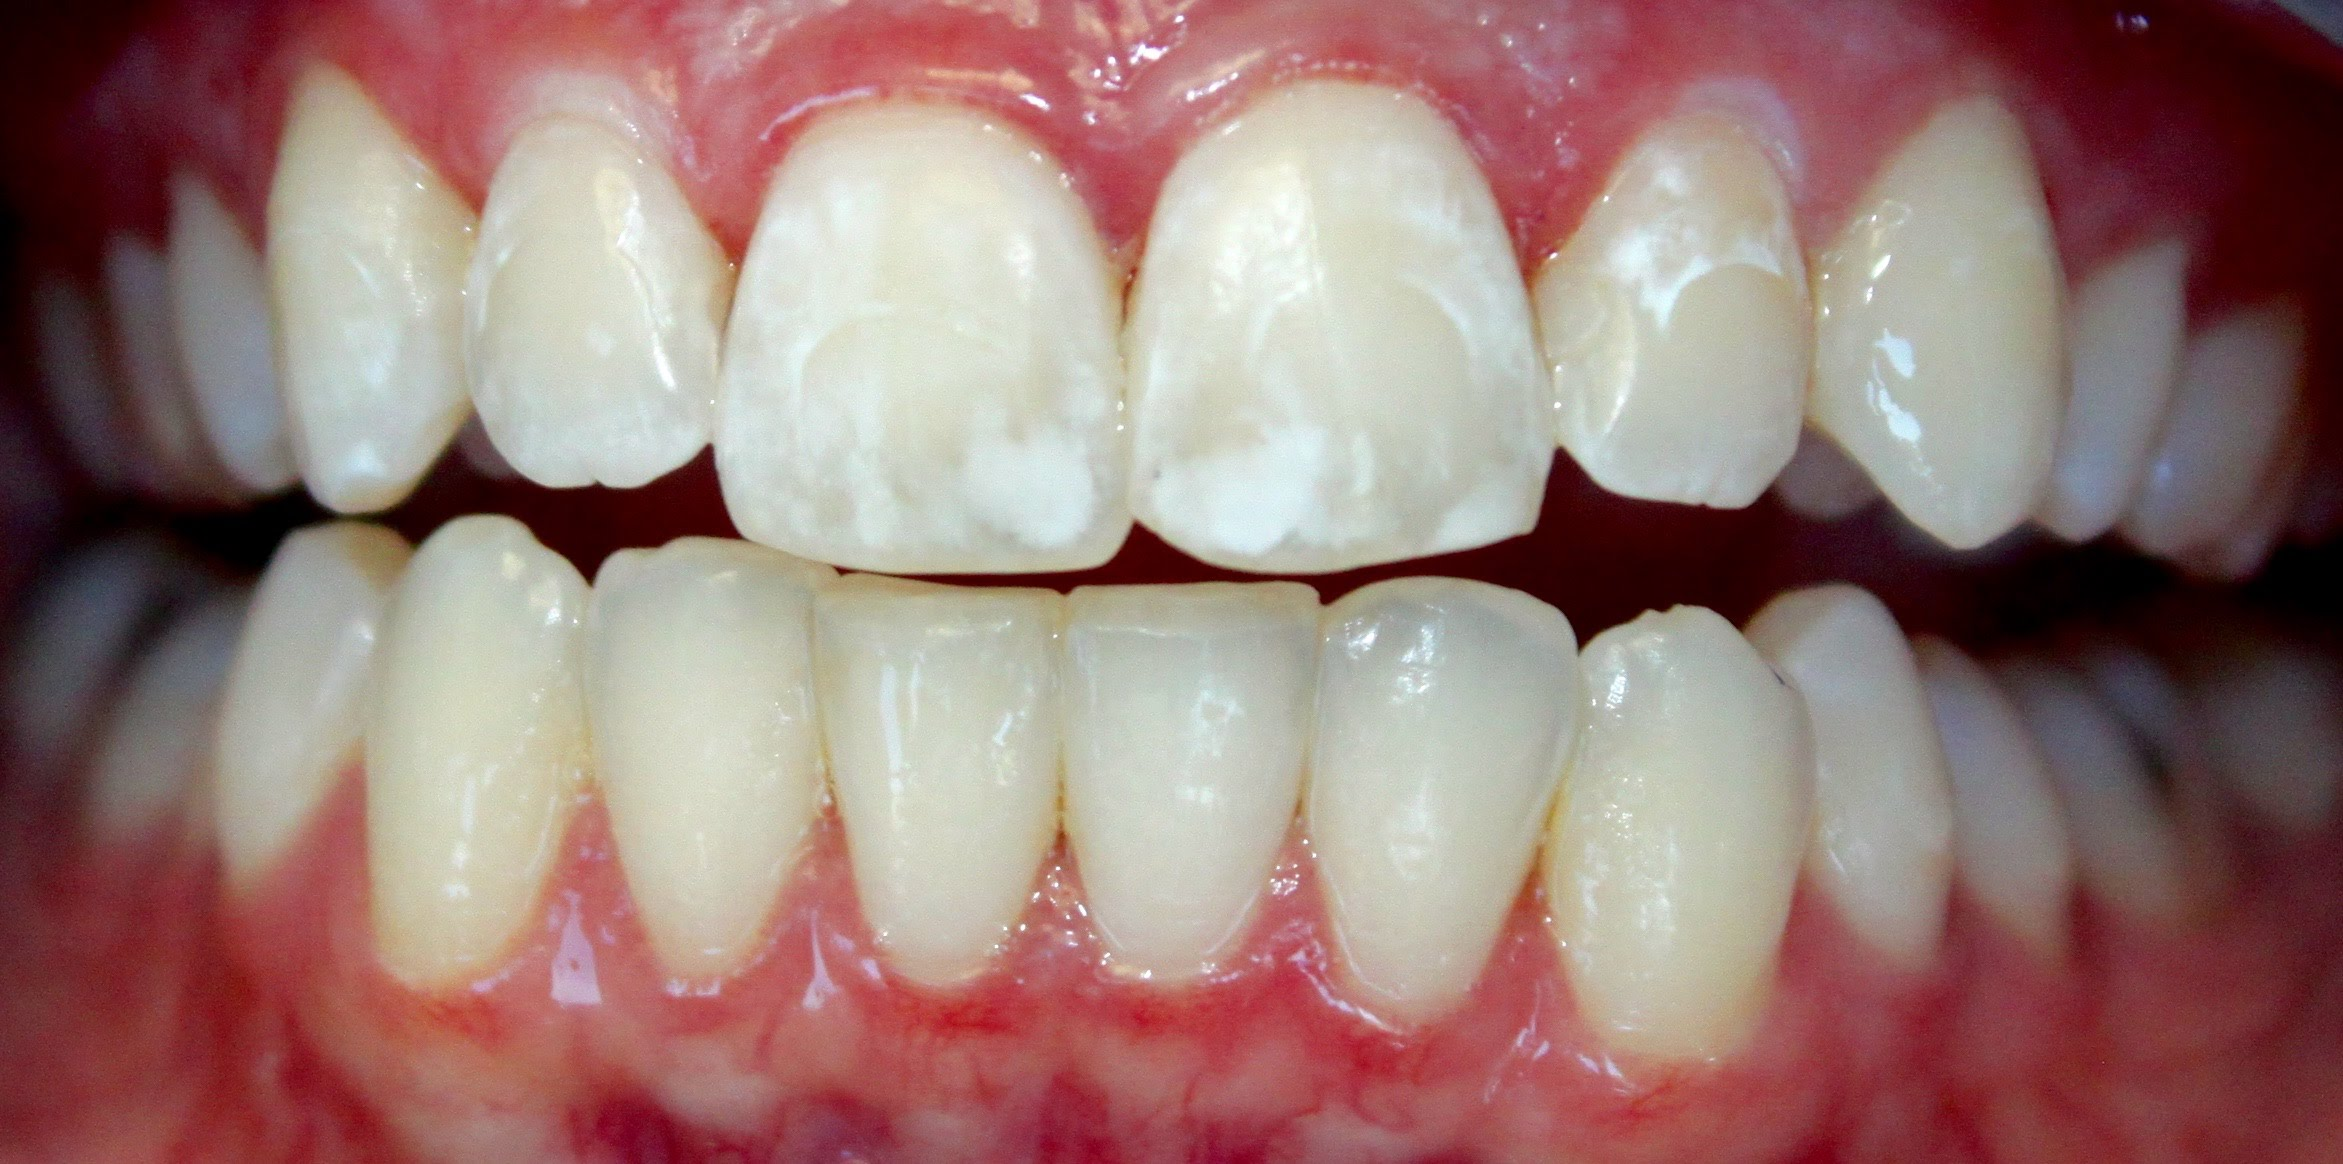 White Spots on Teeth after Braces treatment